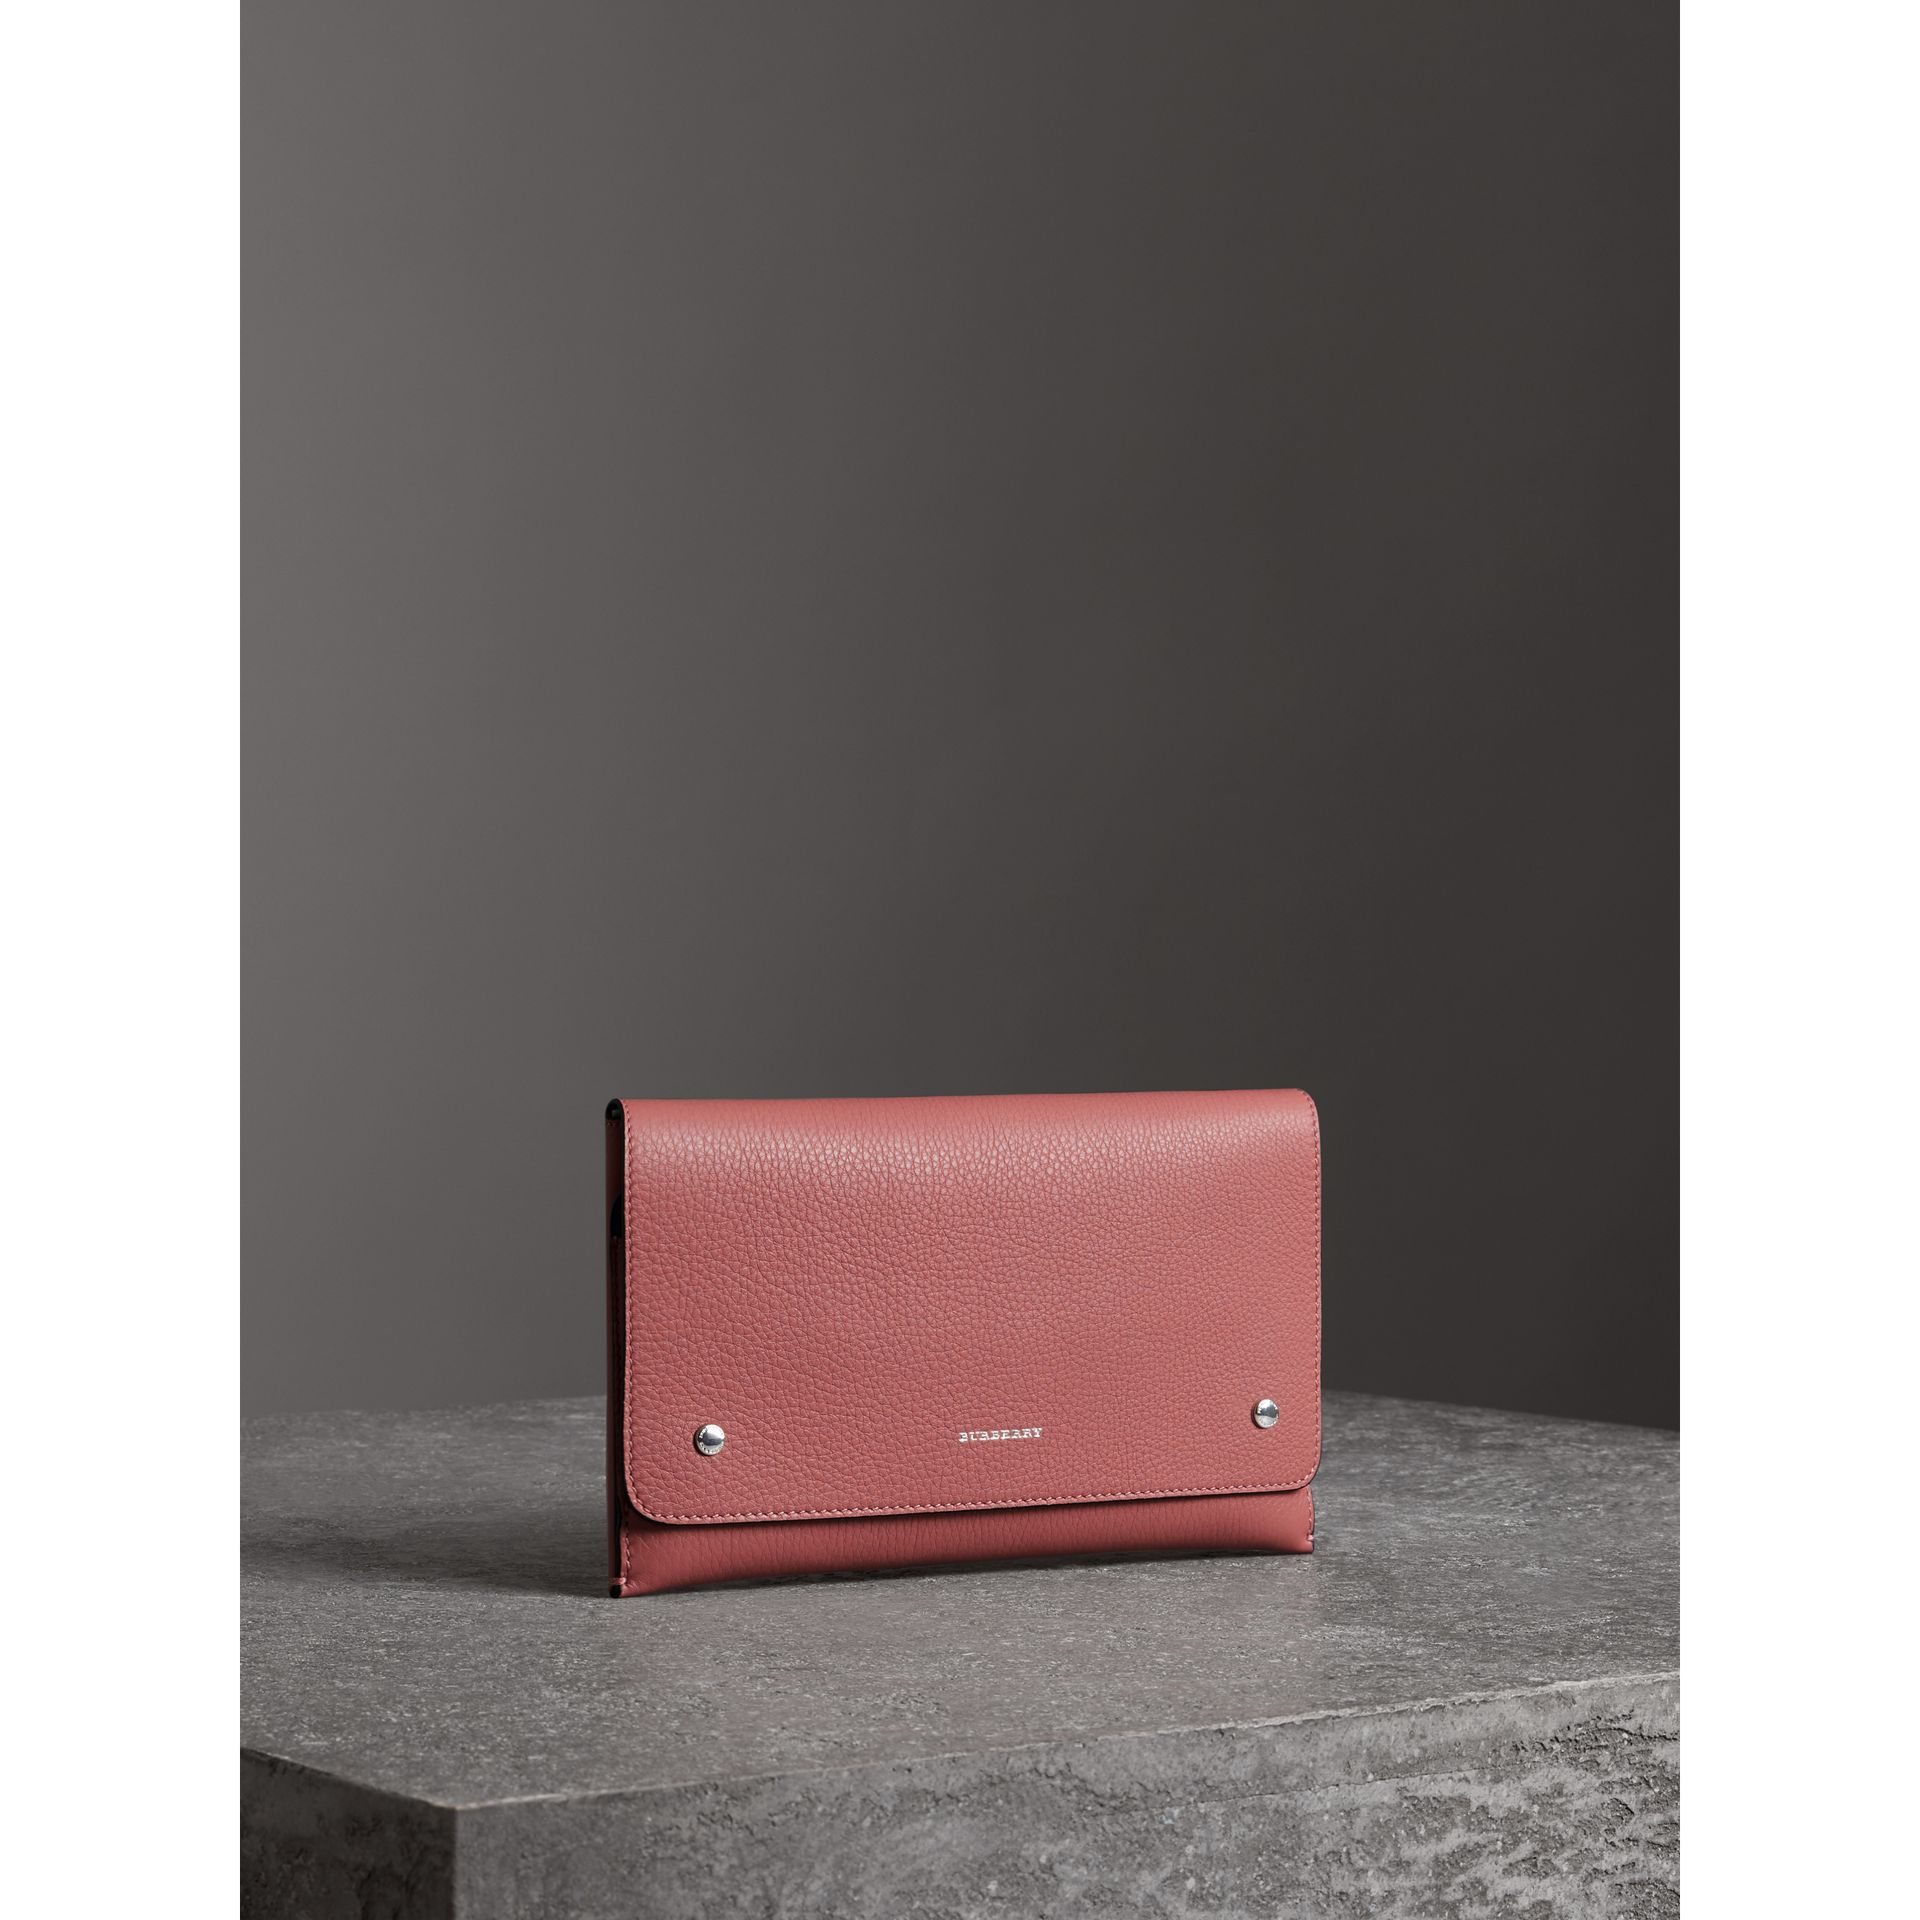 Two-tone Leather Wristlet Clutch in Dusty Rose - Women | Burberry - gallery image 6